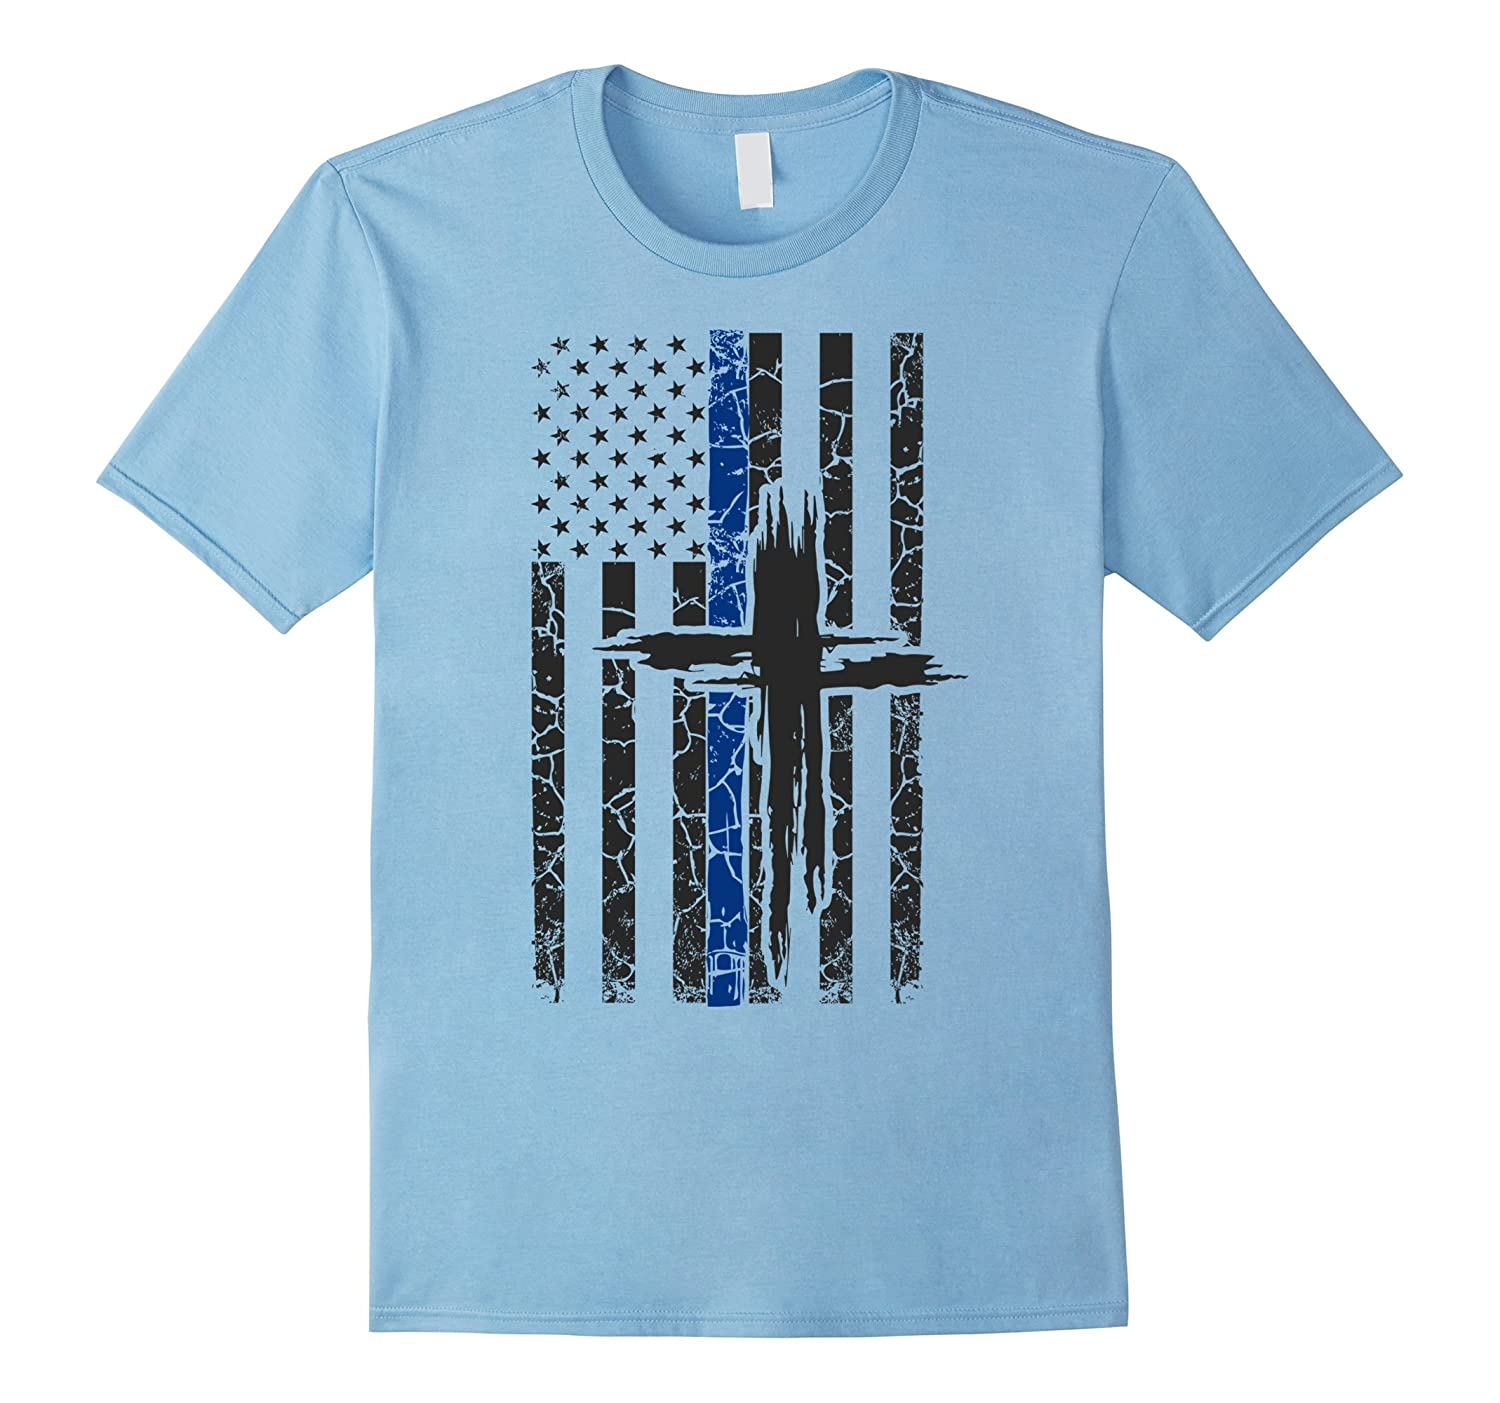 Thin Blue Line T Shirt – For The Police & Their Families